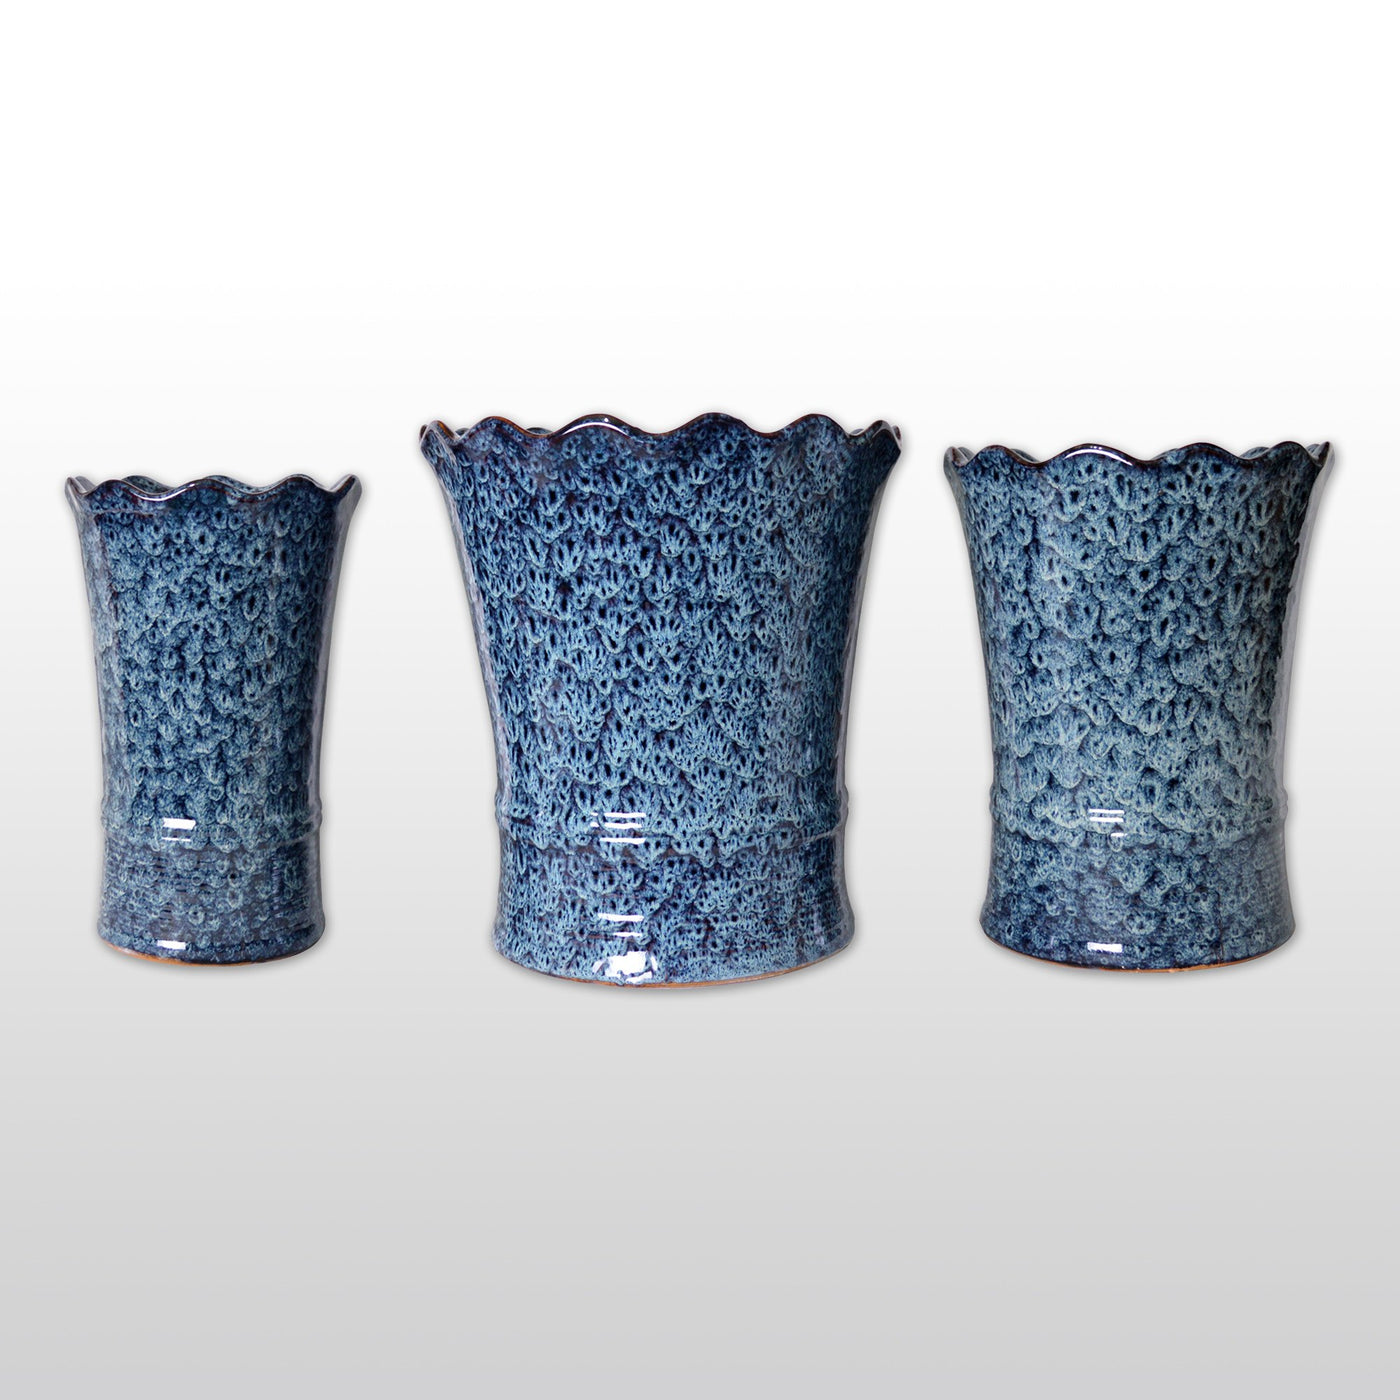 Ceramic Planters   A Trio Of Large Ceramic Flower Pot With White Patterns  On Blue Sheen ...